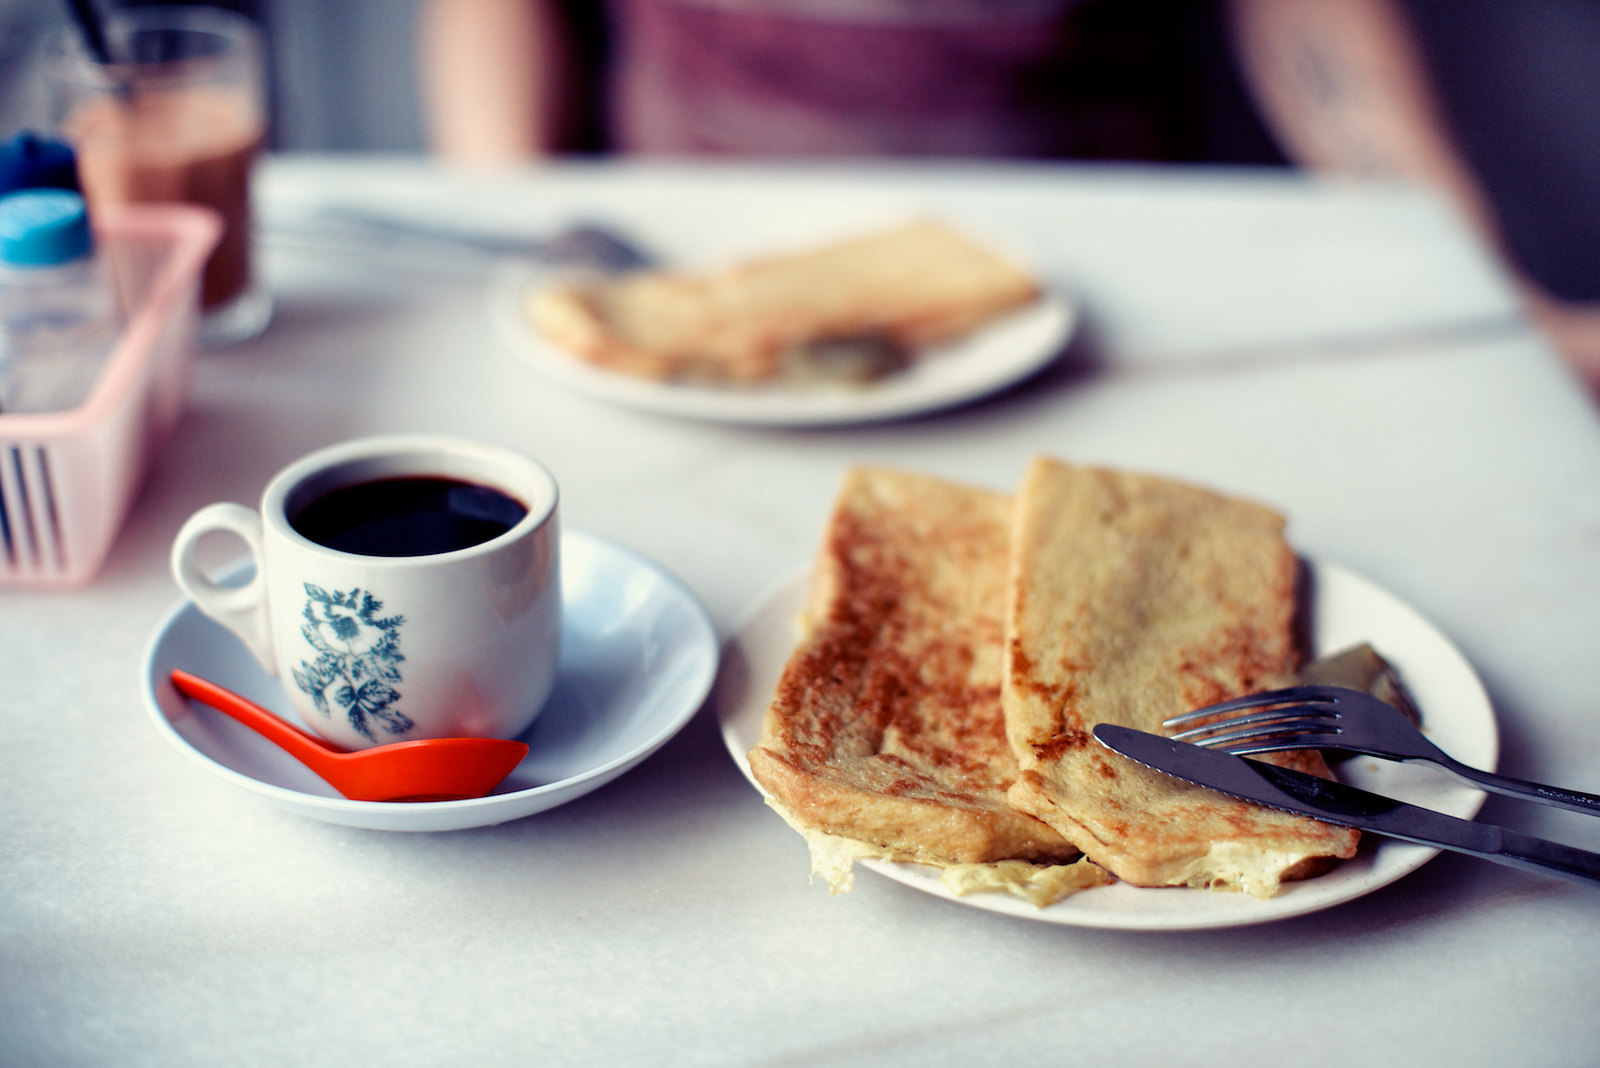 a cup of coffee served with a plate of french toast